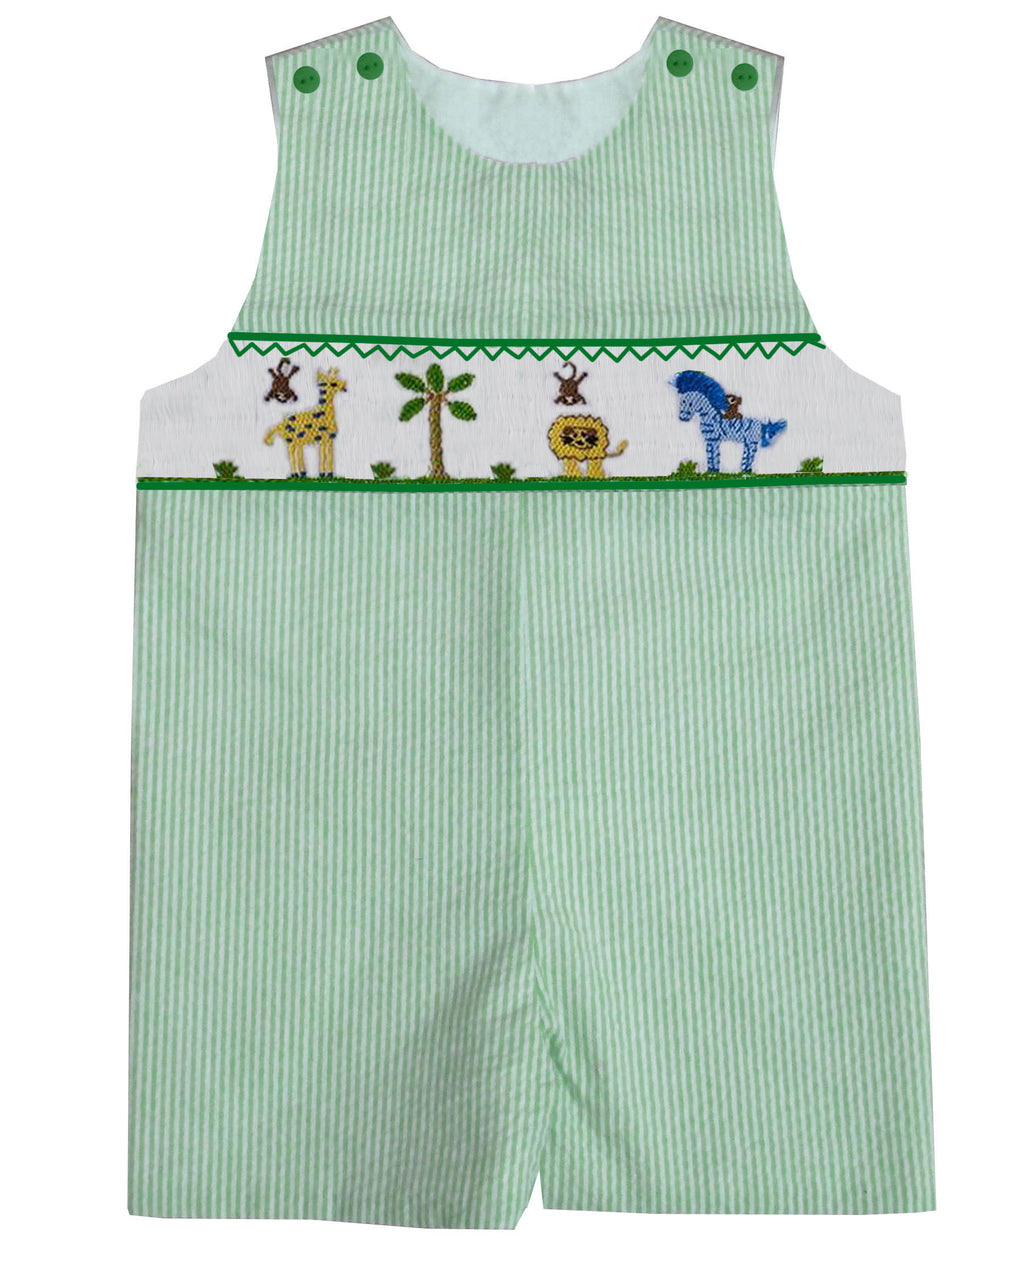 Green Gingham Zoo Animals JonJon